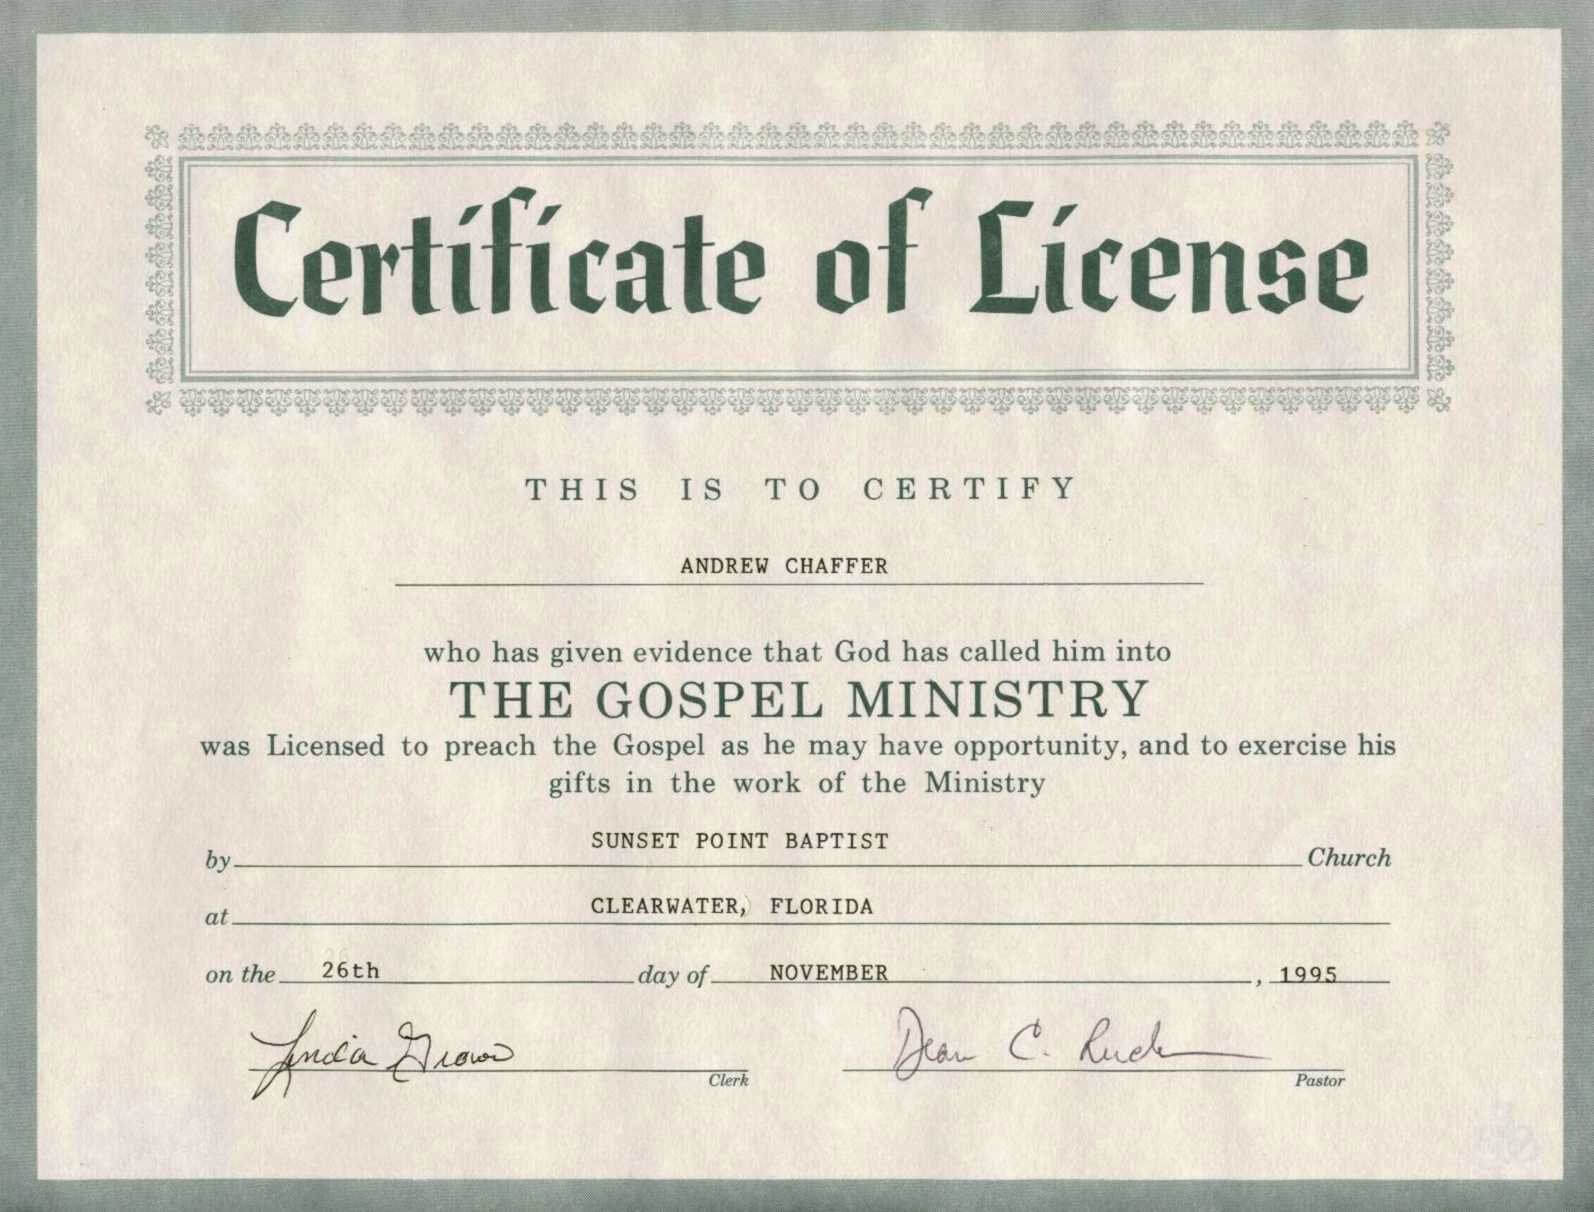 30 Minister License Certificate Template | Pryncepality In Certificate Of License Template